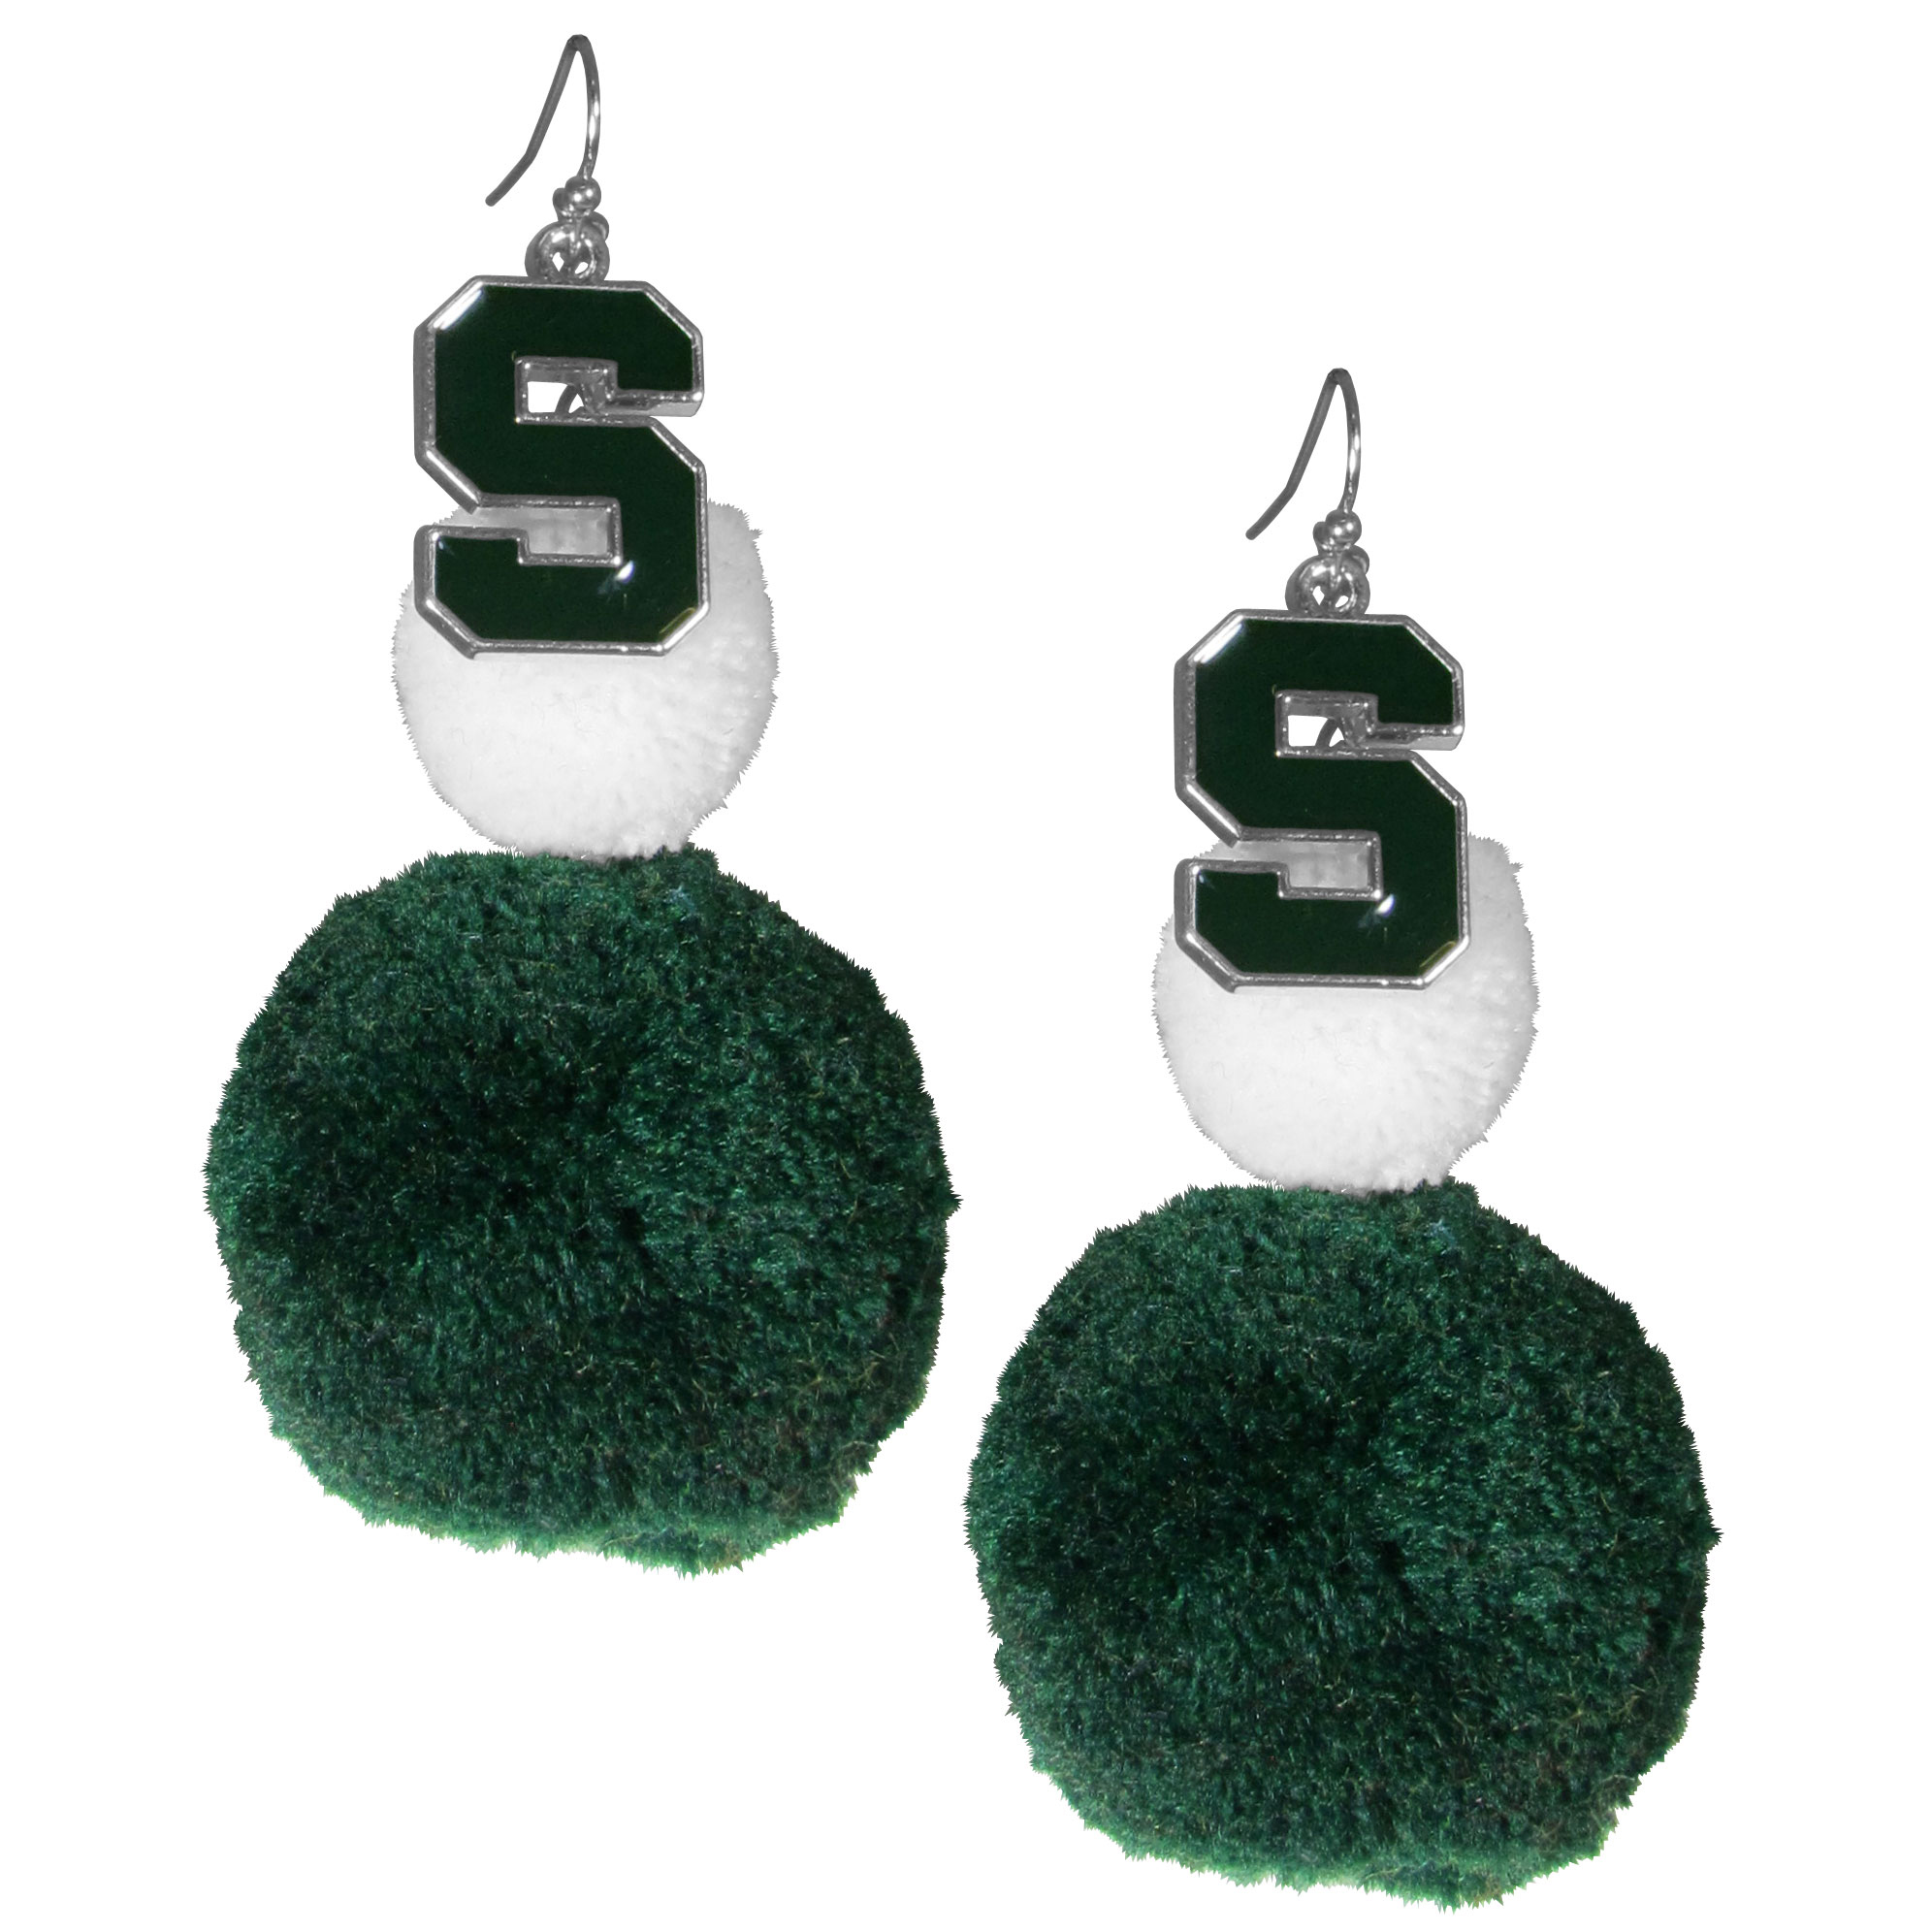 Michigan St. Spartans Pom Pom Earrings - These fun and bold earrings are a game day must! The earrings feature a metal Michigan St. Spartans charm with enameled color details that hangs above to colorful pom pom charms. The largest pom is 1.5 inches round for, the earrings hang at 3.5 inches long. The fishhook posts are nickel free and hypoallergenic.